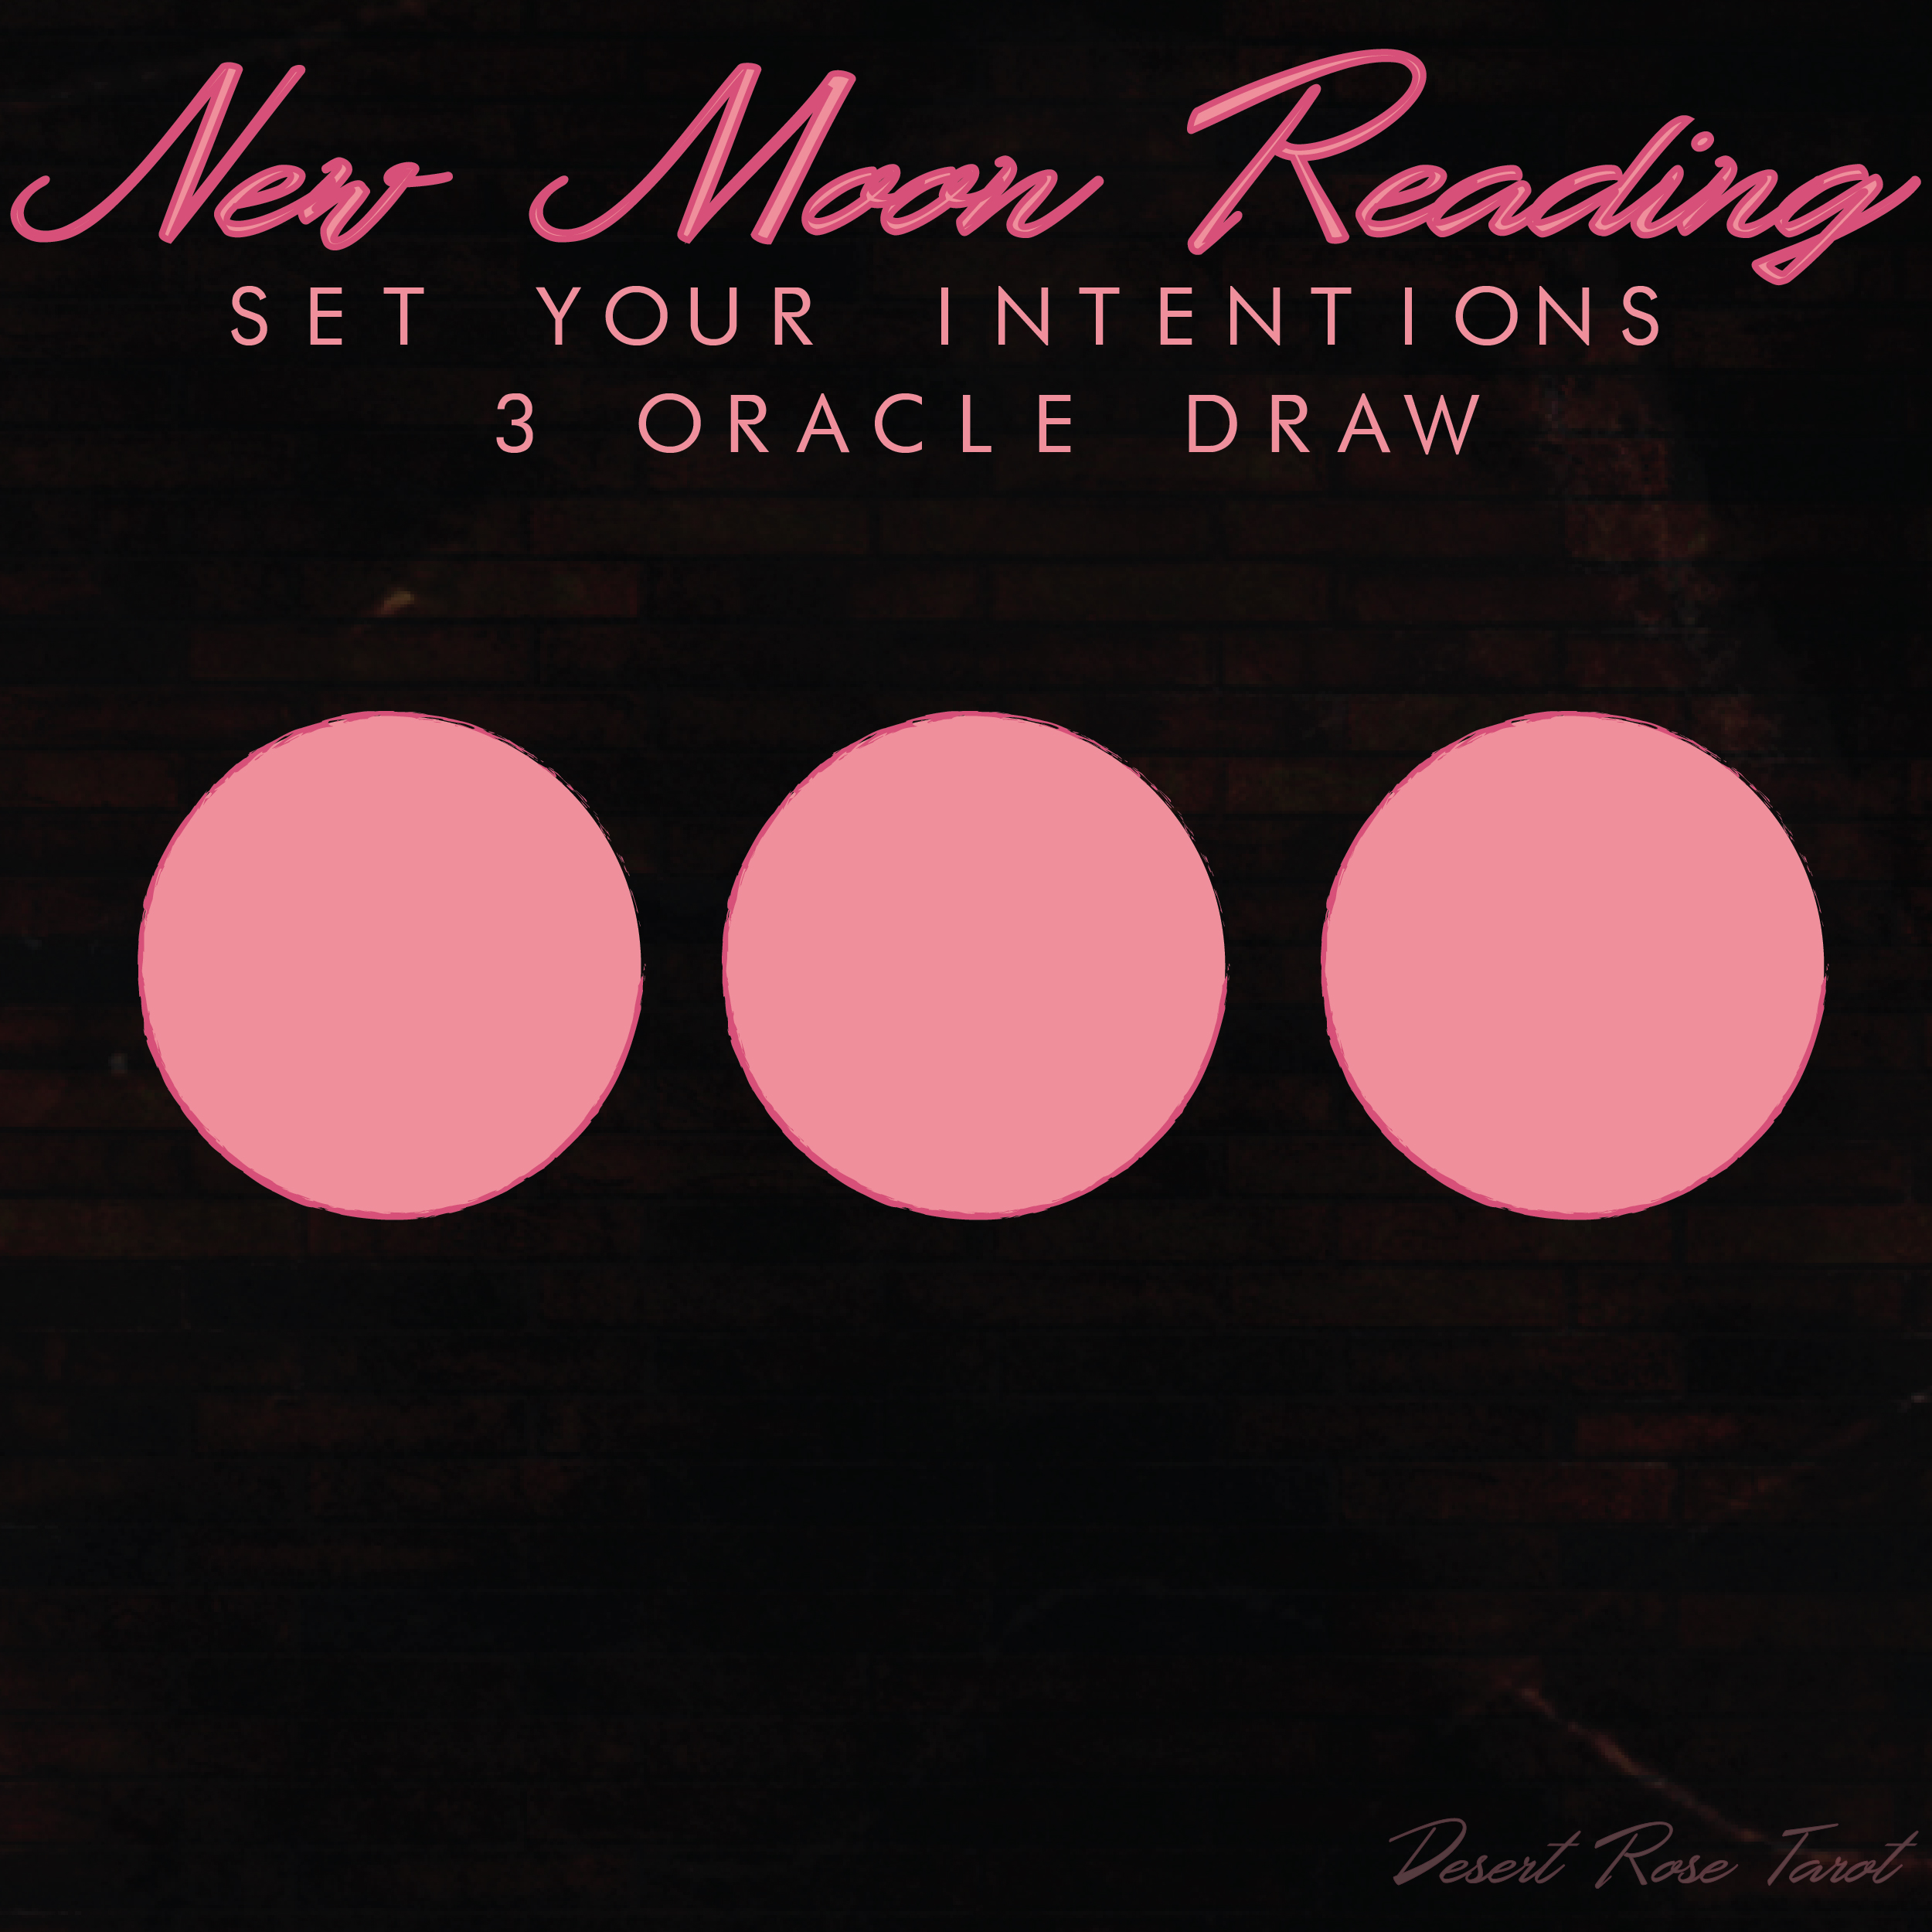 New Moon Oracle Reading from The Desert Rose